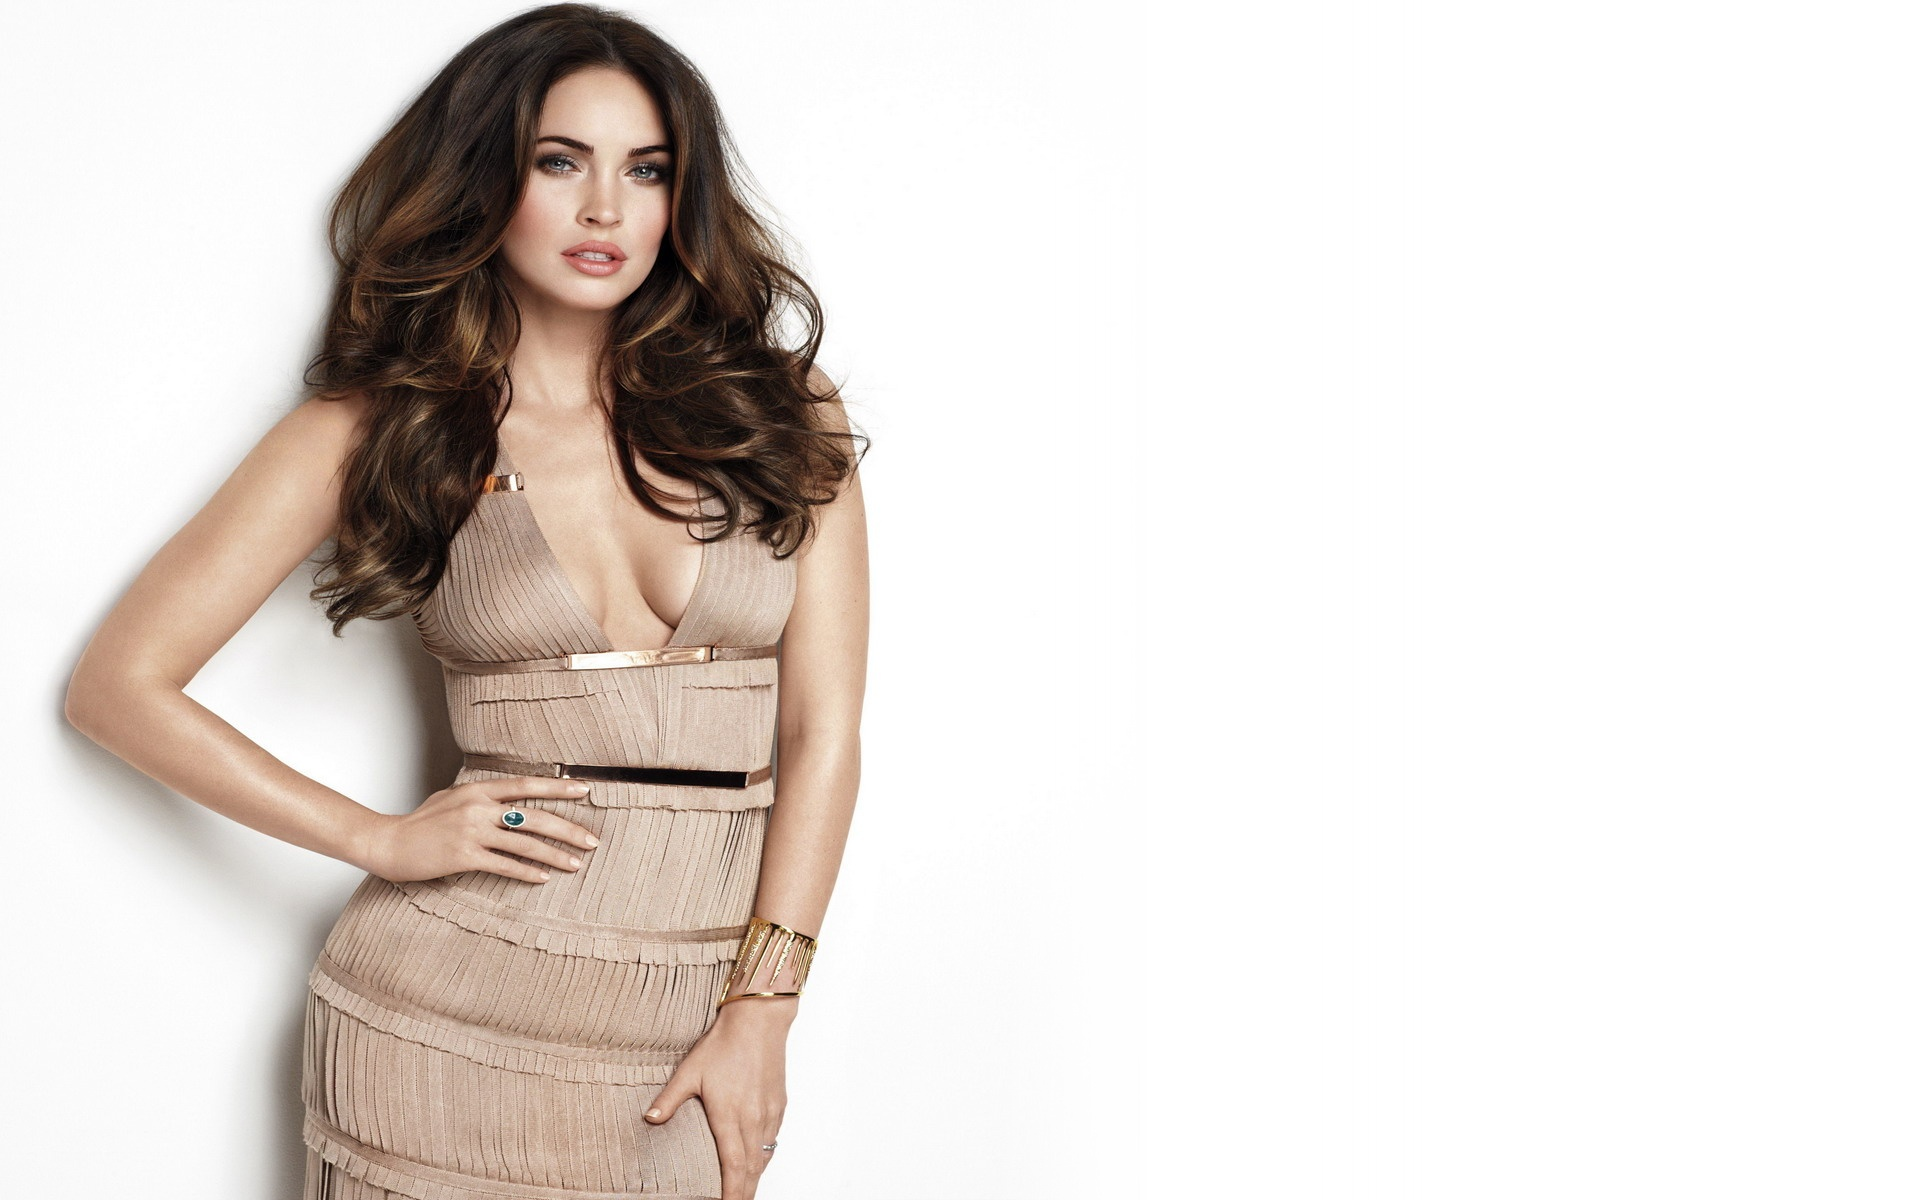 Megan Fox 2012 Wallpaper   Megan Fox Wallpaper 30740873 1920x1200